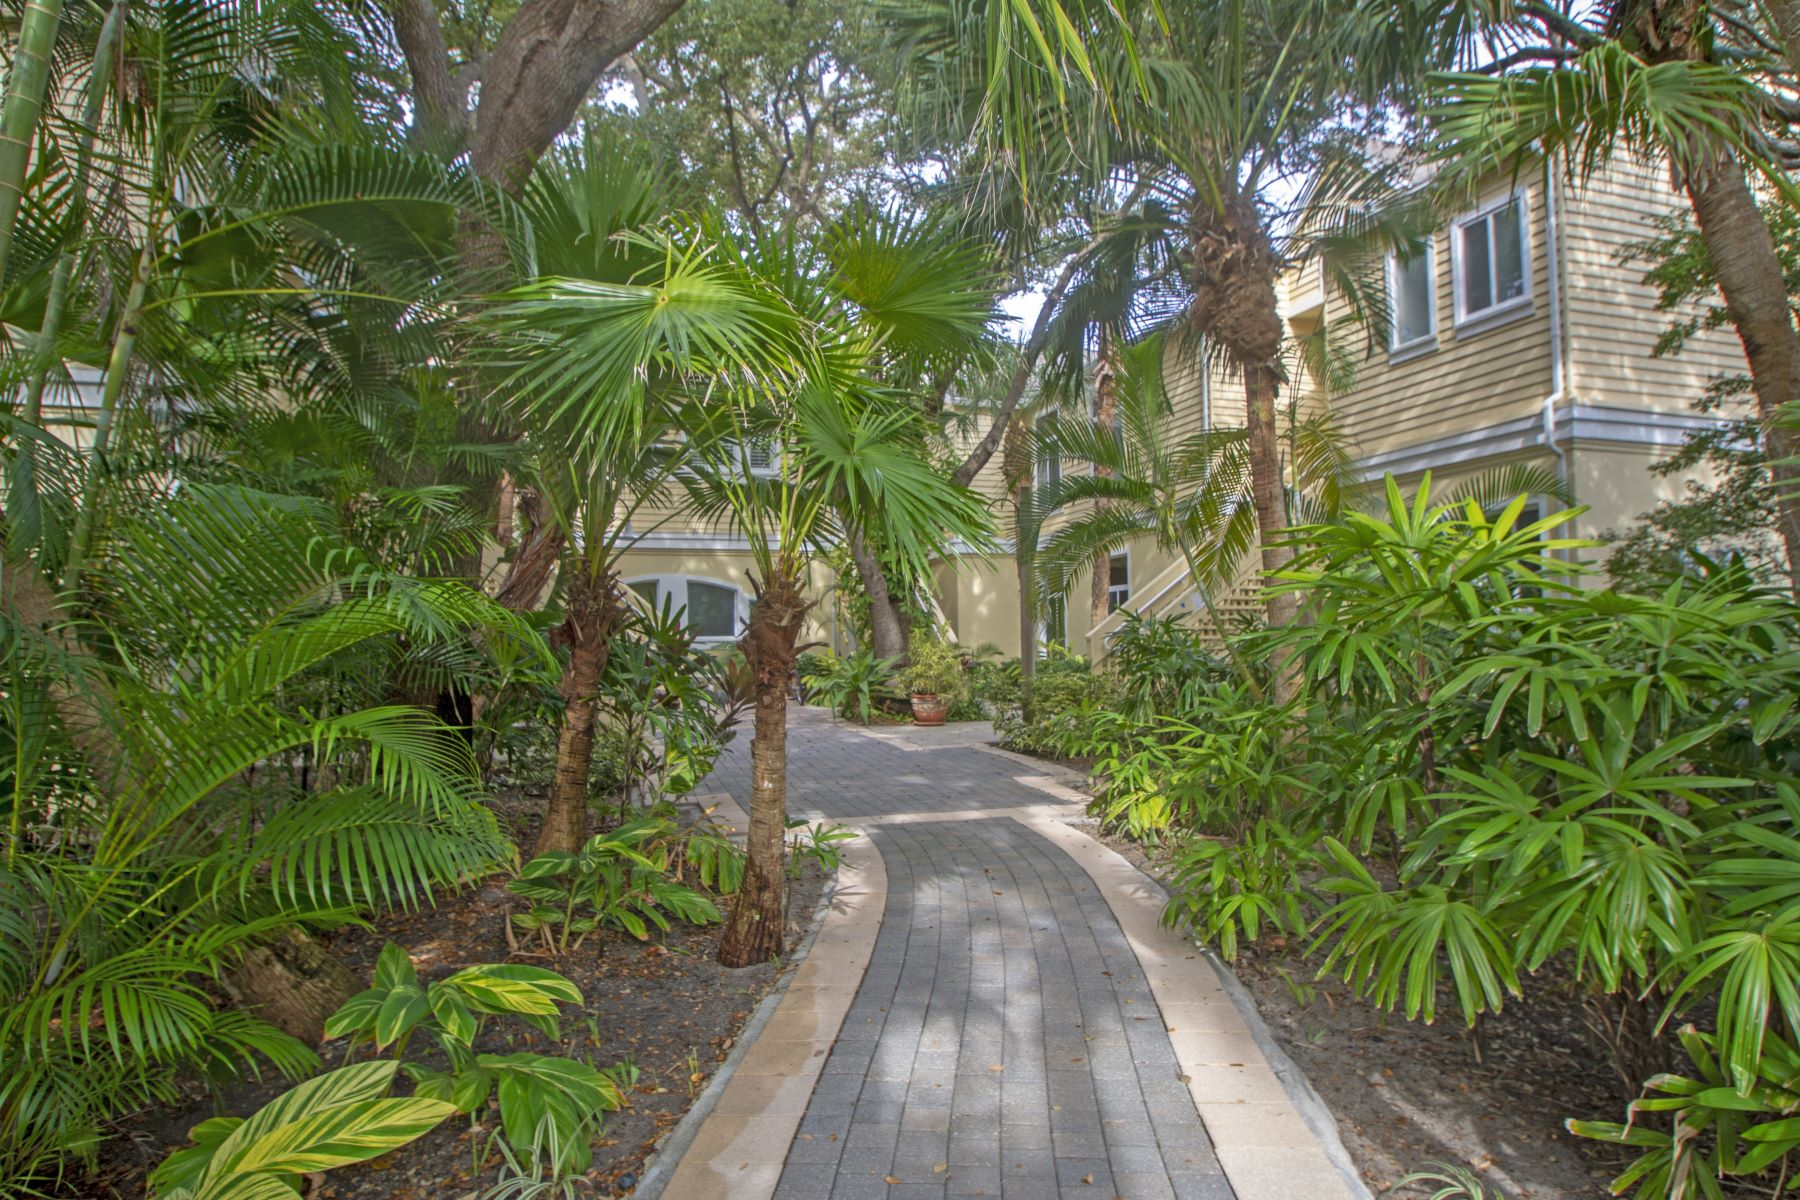 Property for Sale at 1235 Winding Oaks Circle, #502, Vero Beach, FL 1235 Winding Oaks Circle, 502 Vero Beach, Florida 32963 United States